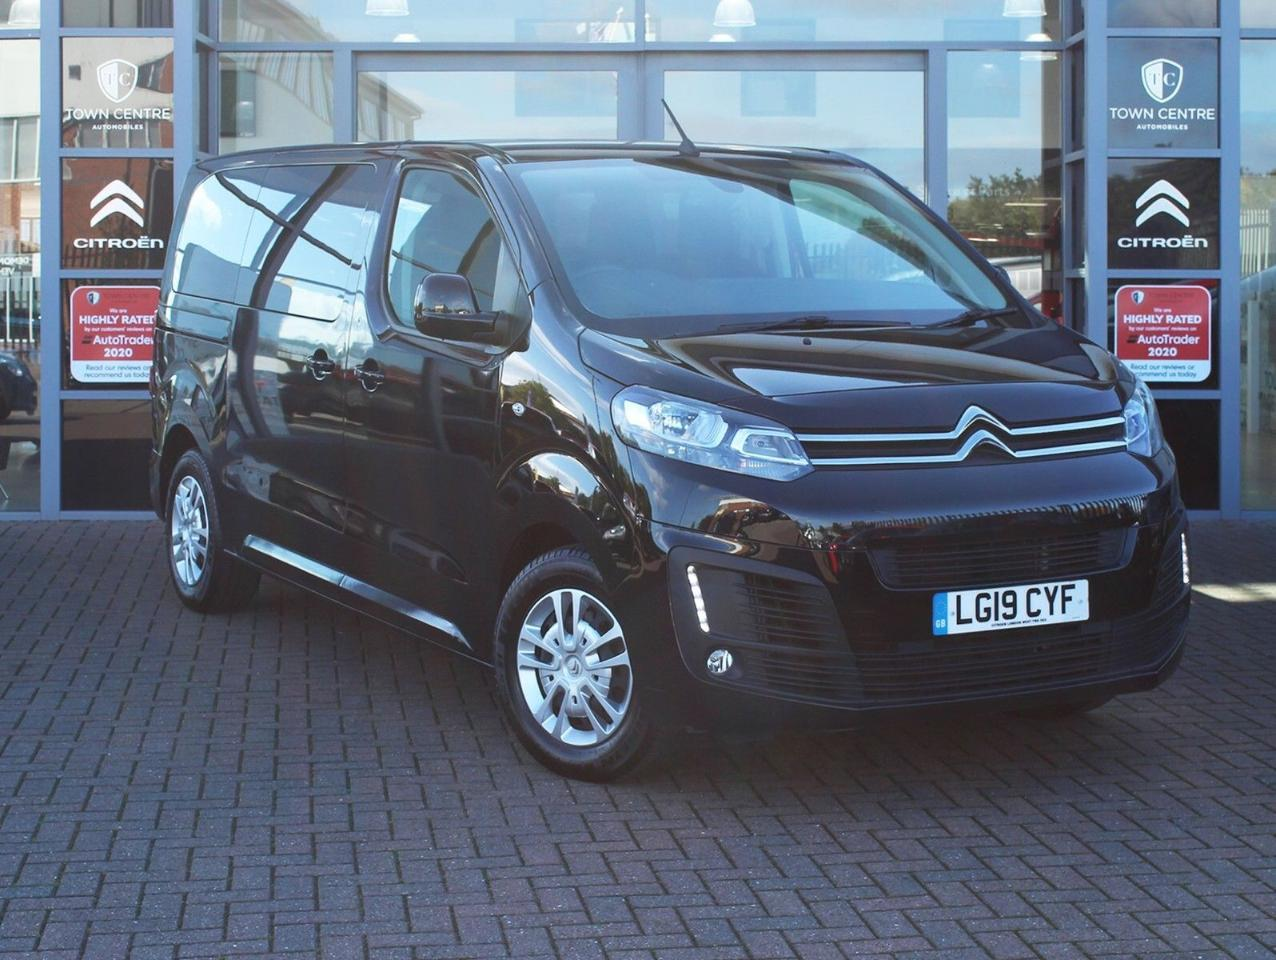 Citroën Spacetourer 1.5 BlueHDi Business M MWB EU6 (s/s) 5dr